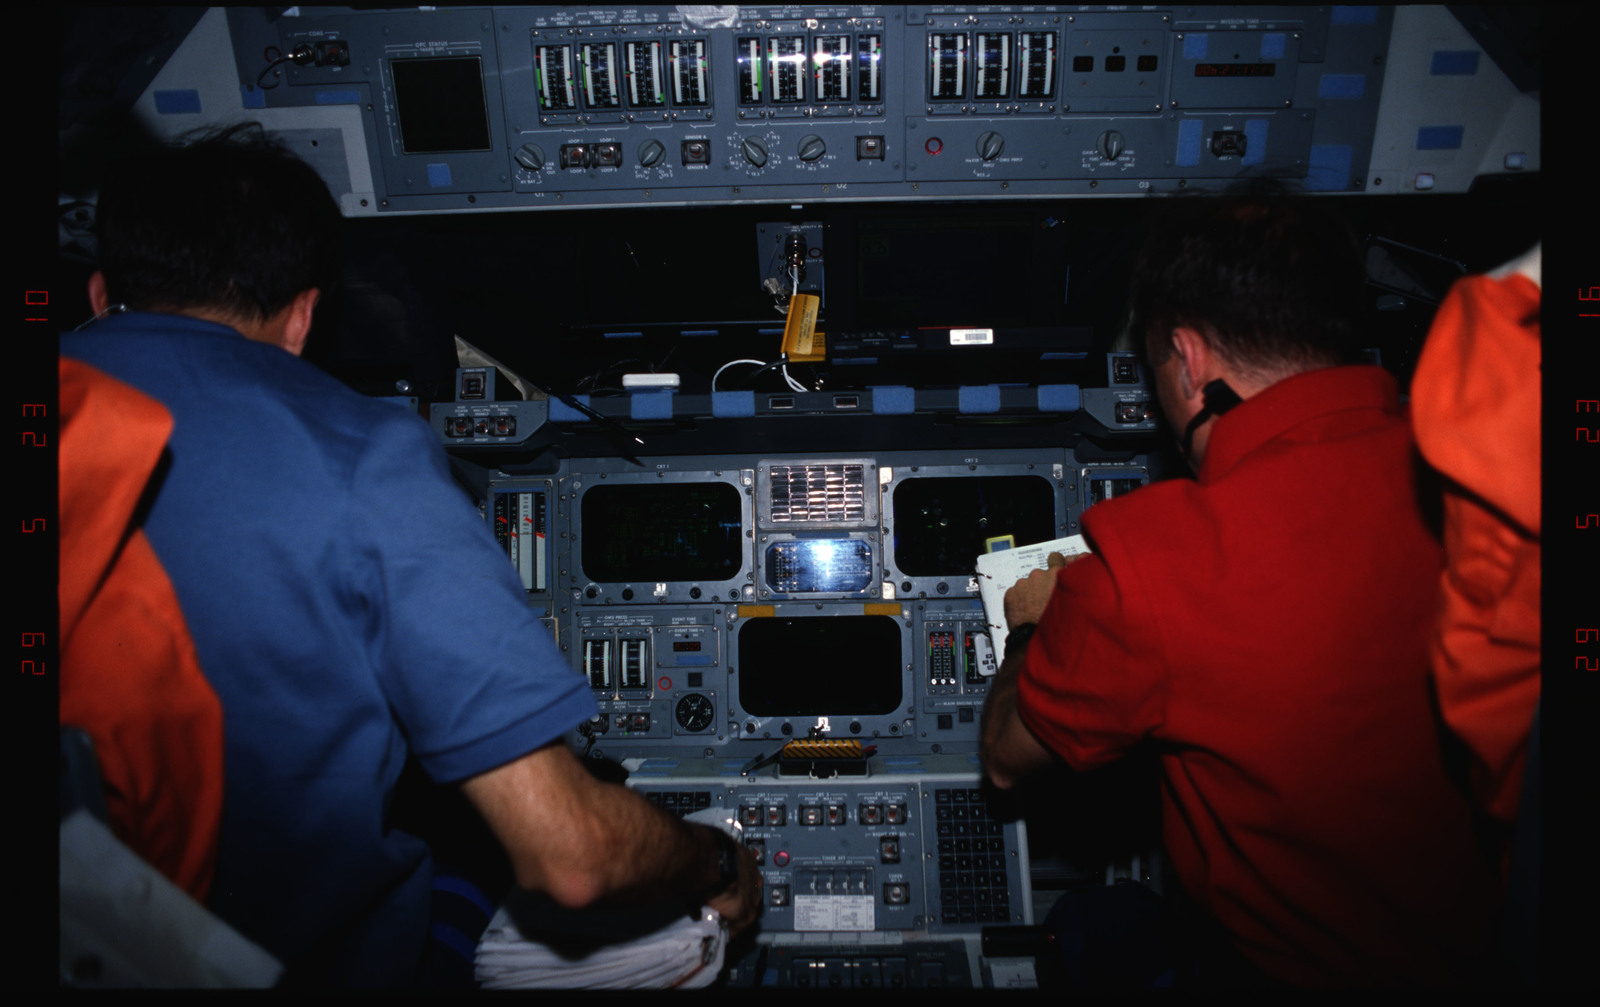 STS076-309-009 - STS-076 - Commander Kevin Chilton and Pilot Rick Searfoss review procedures in flight deck